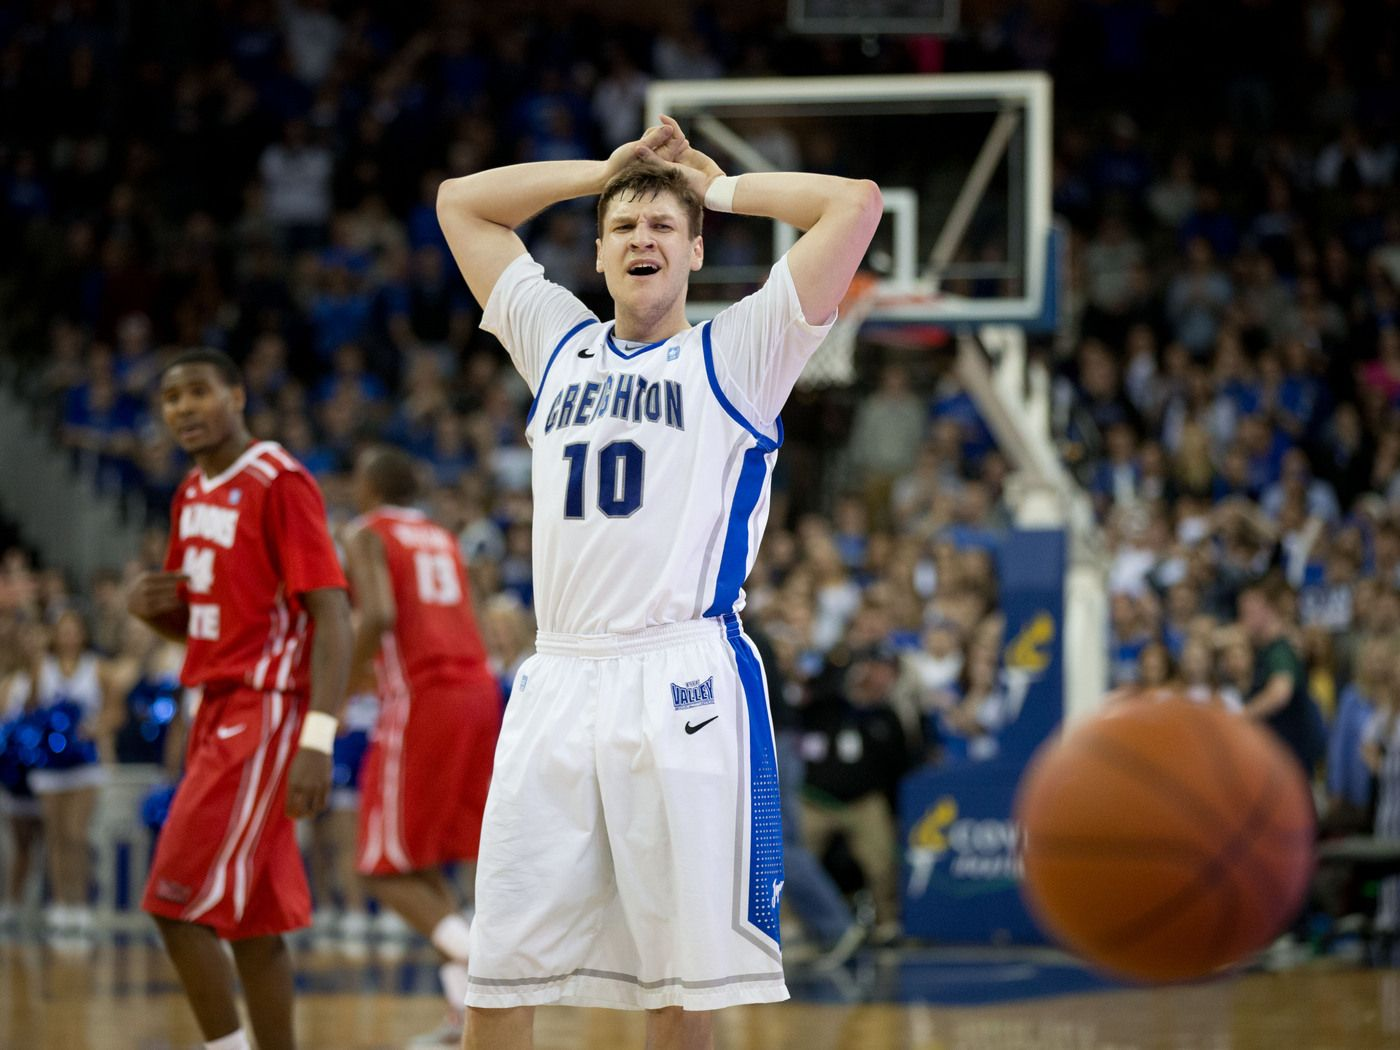 Creighton's Grant Gibbs (10) doesn't like the timeout call